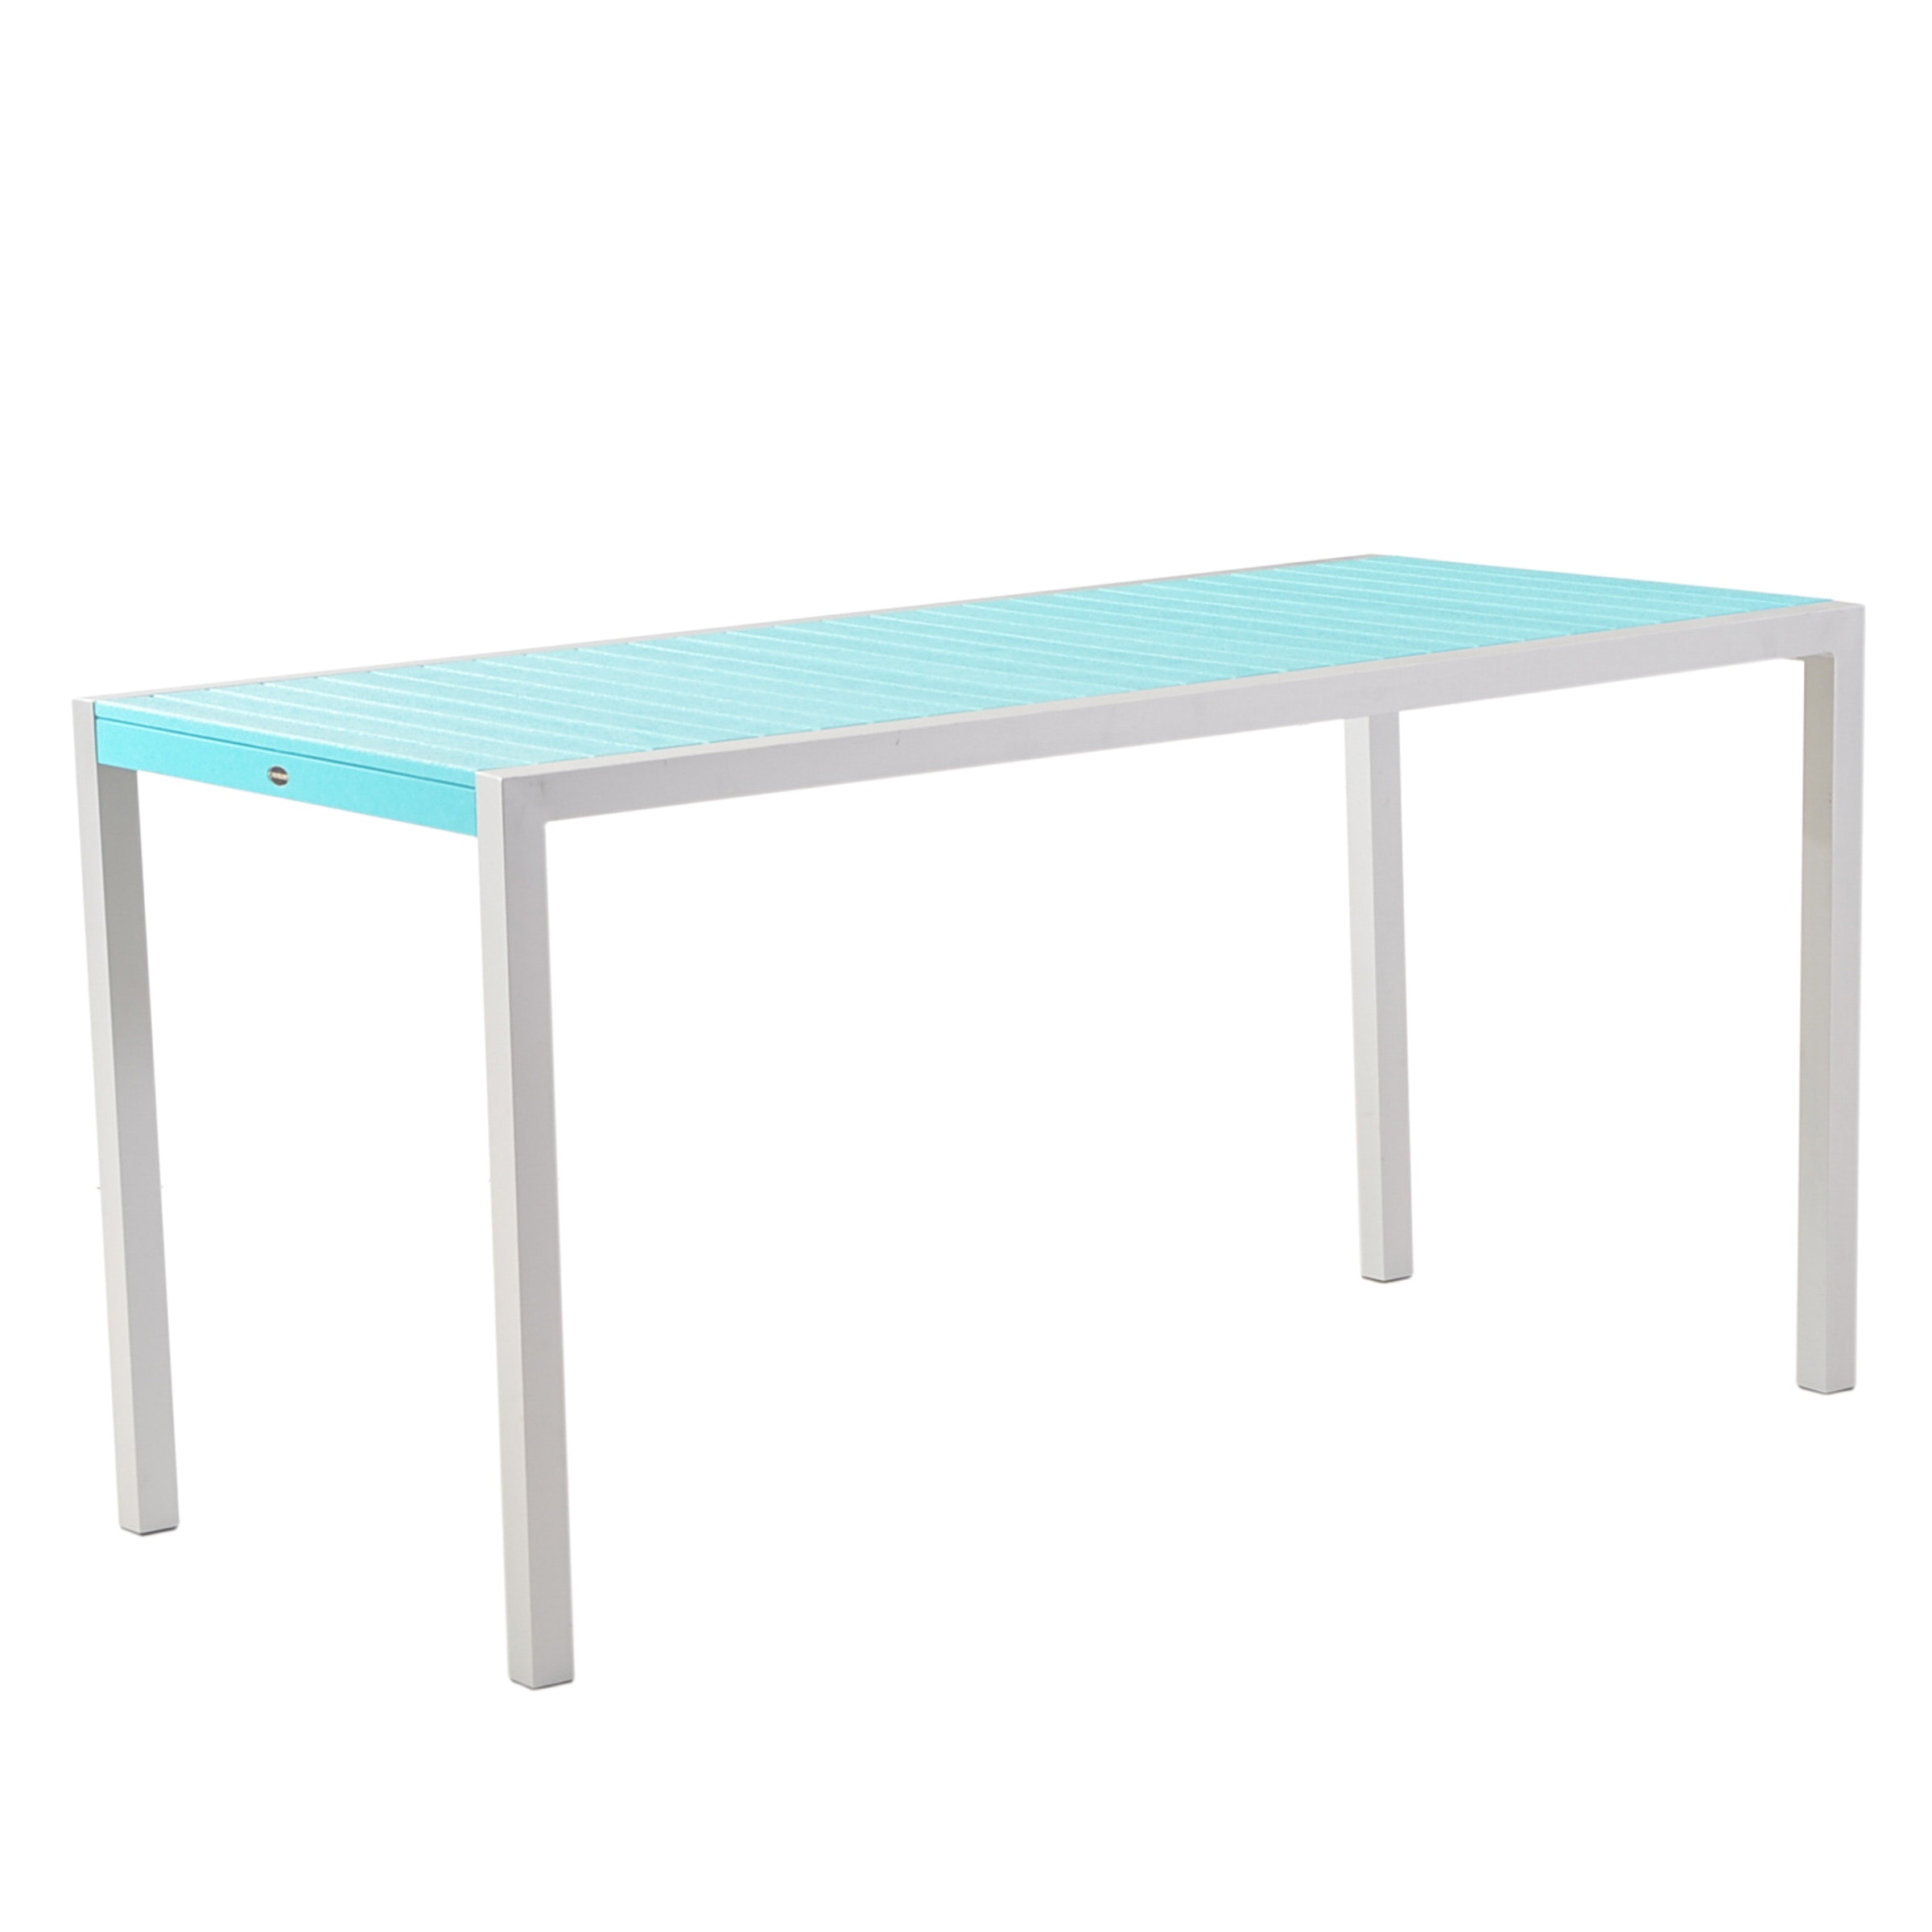 Polywood Aqua Blue Plank Bar-Height Table